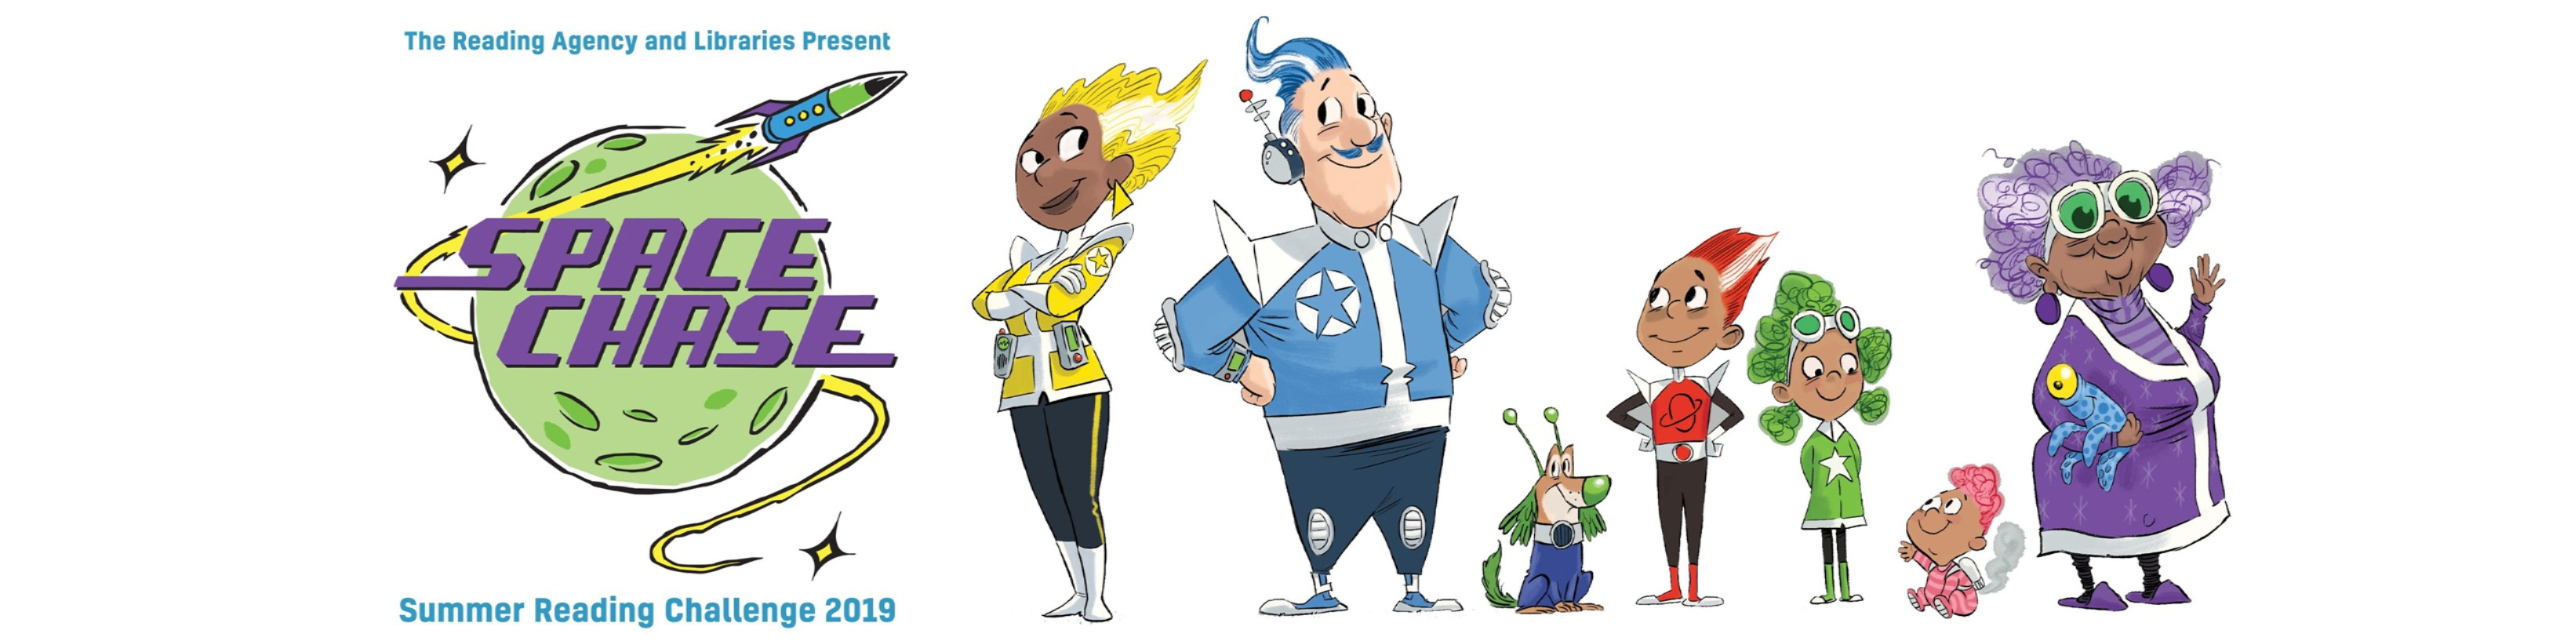 The Rocket Family summer reading challenge characters